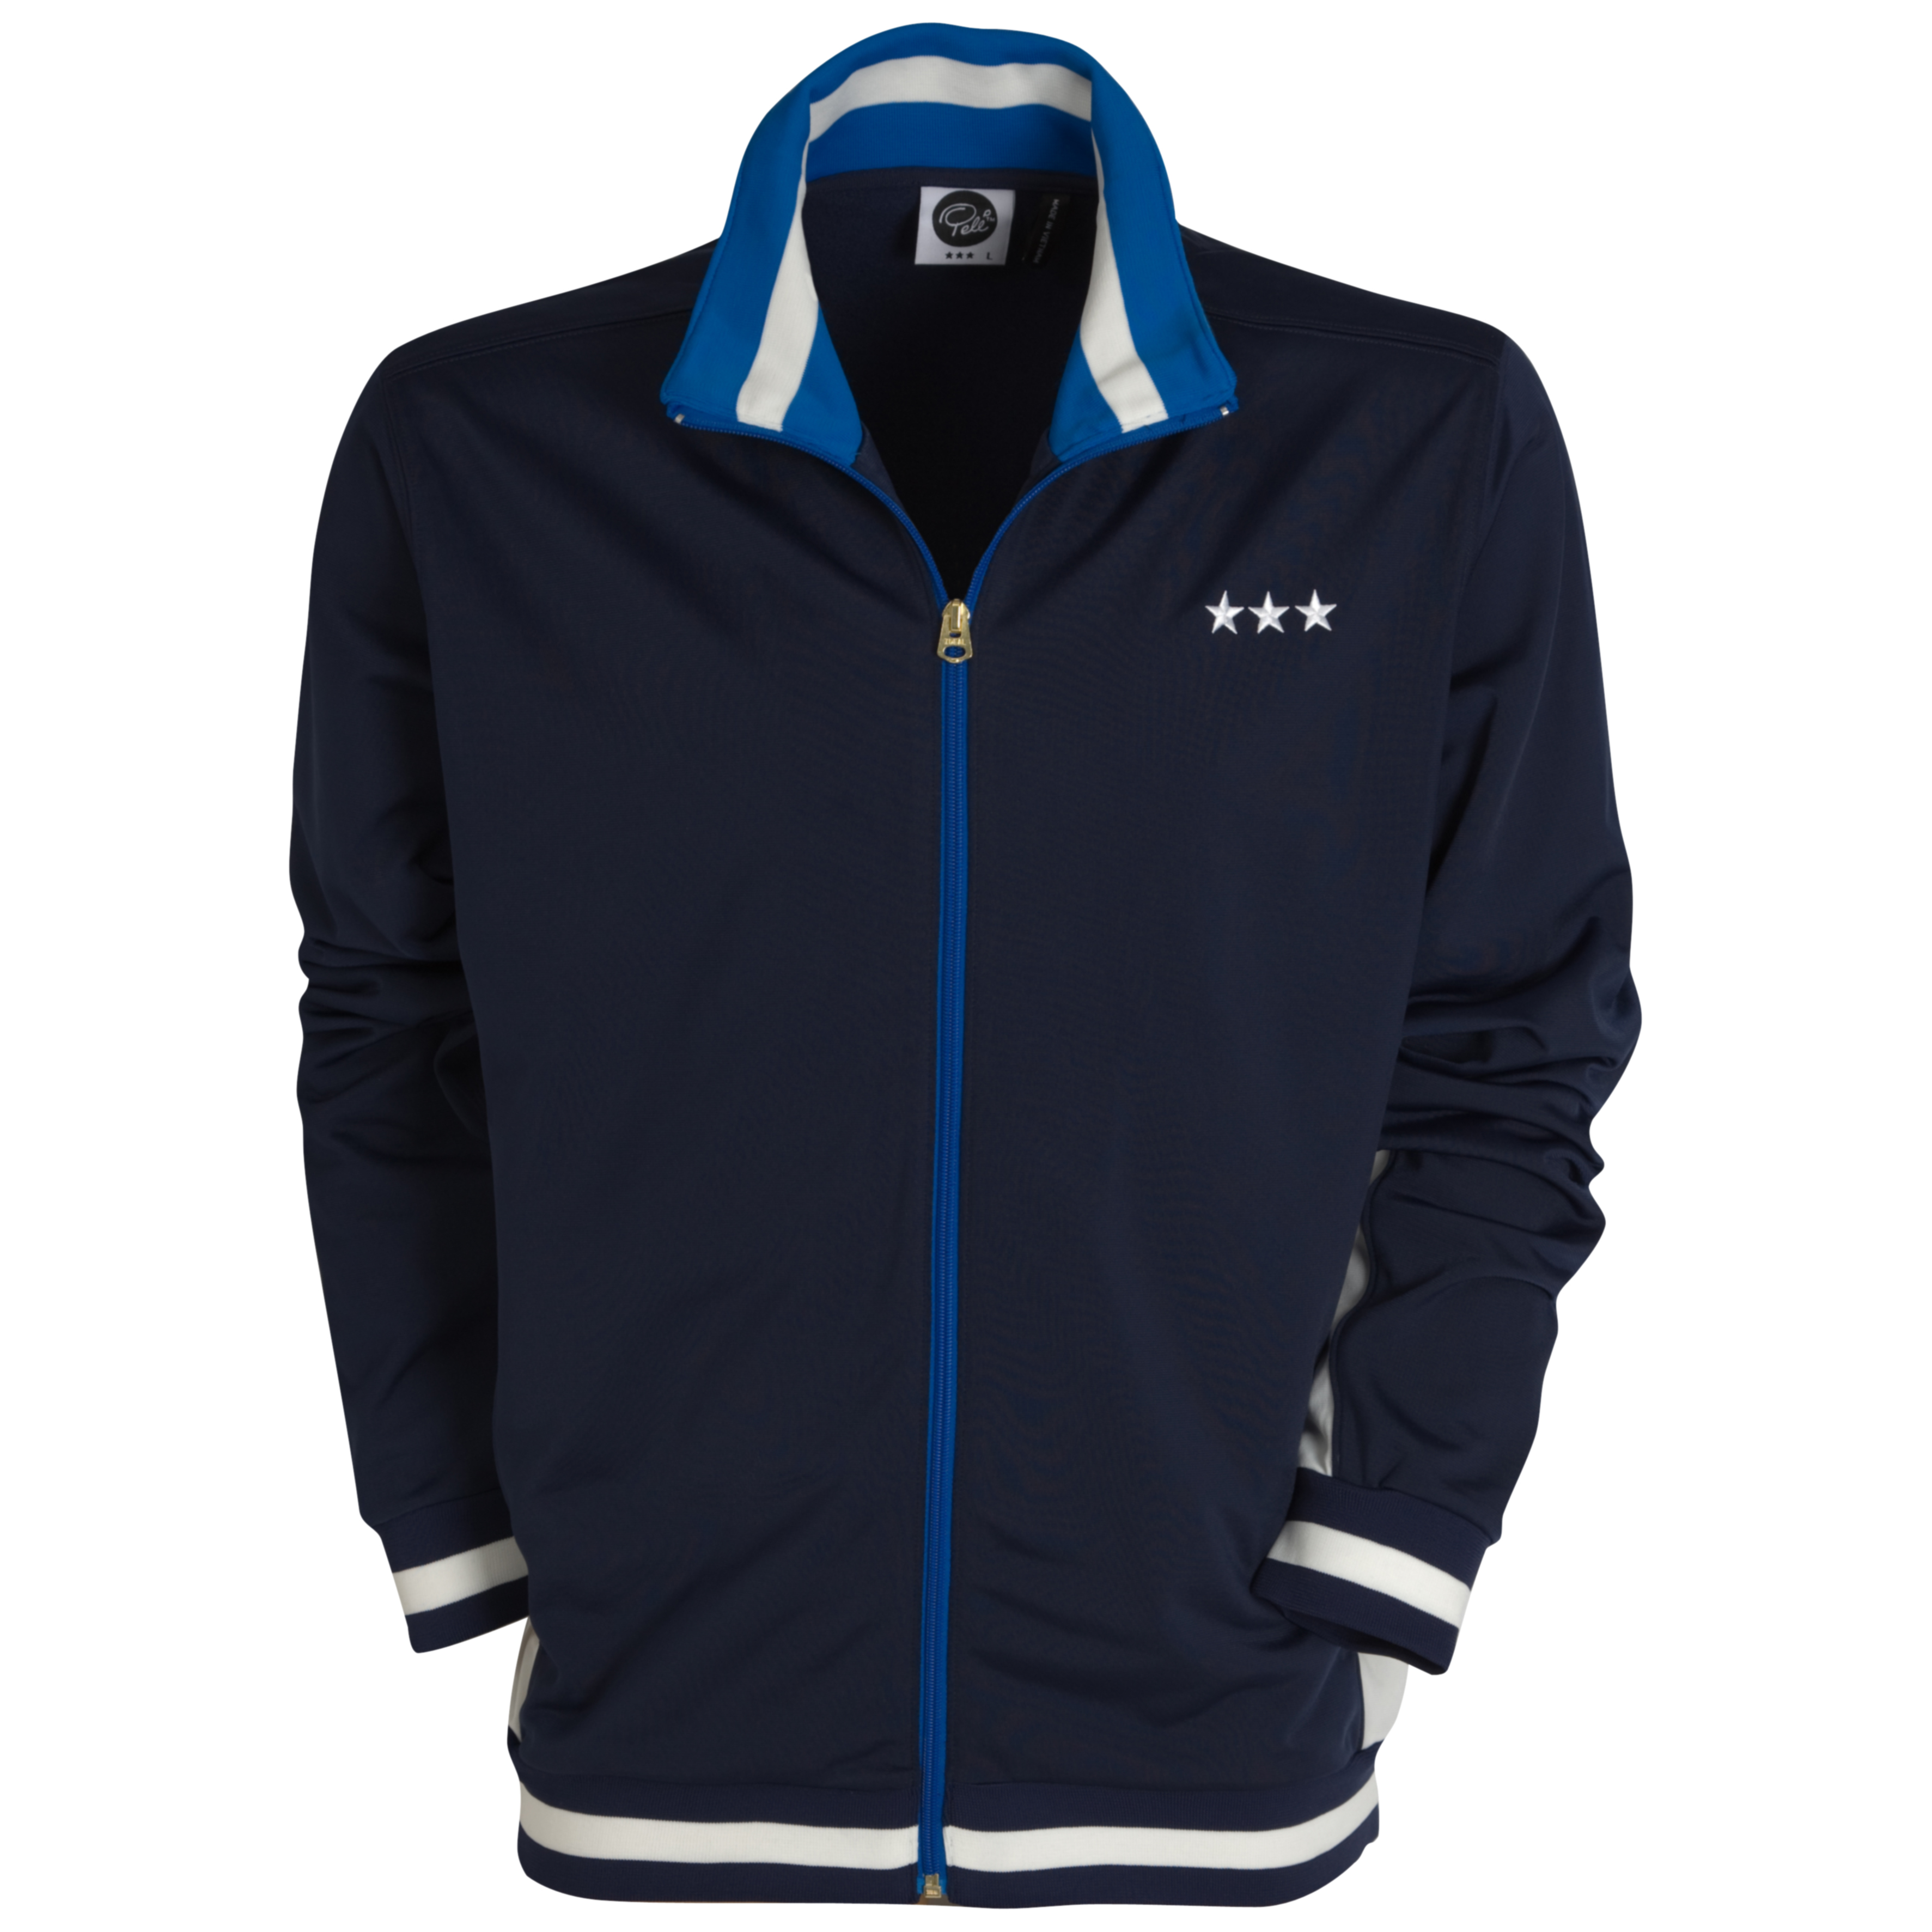 Pele Pel? Sports Track Jacket - Peacoat/Snow White